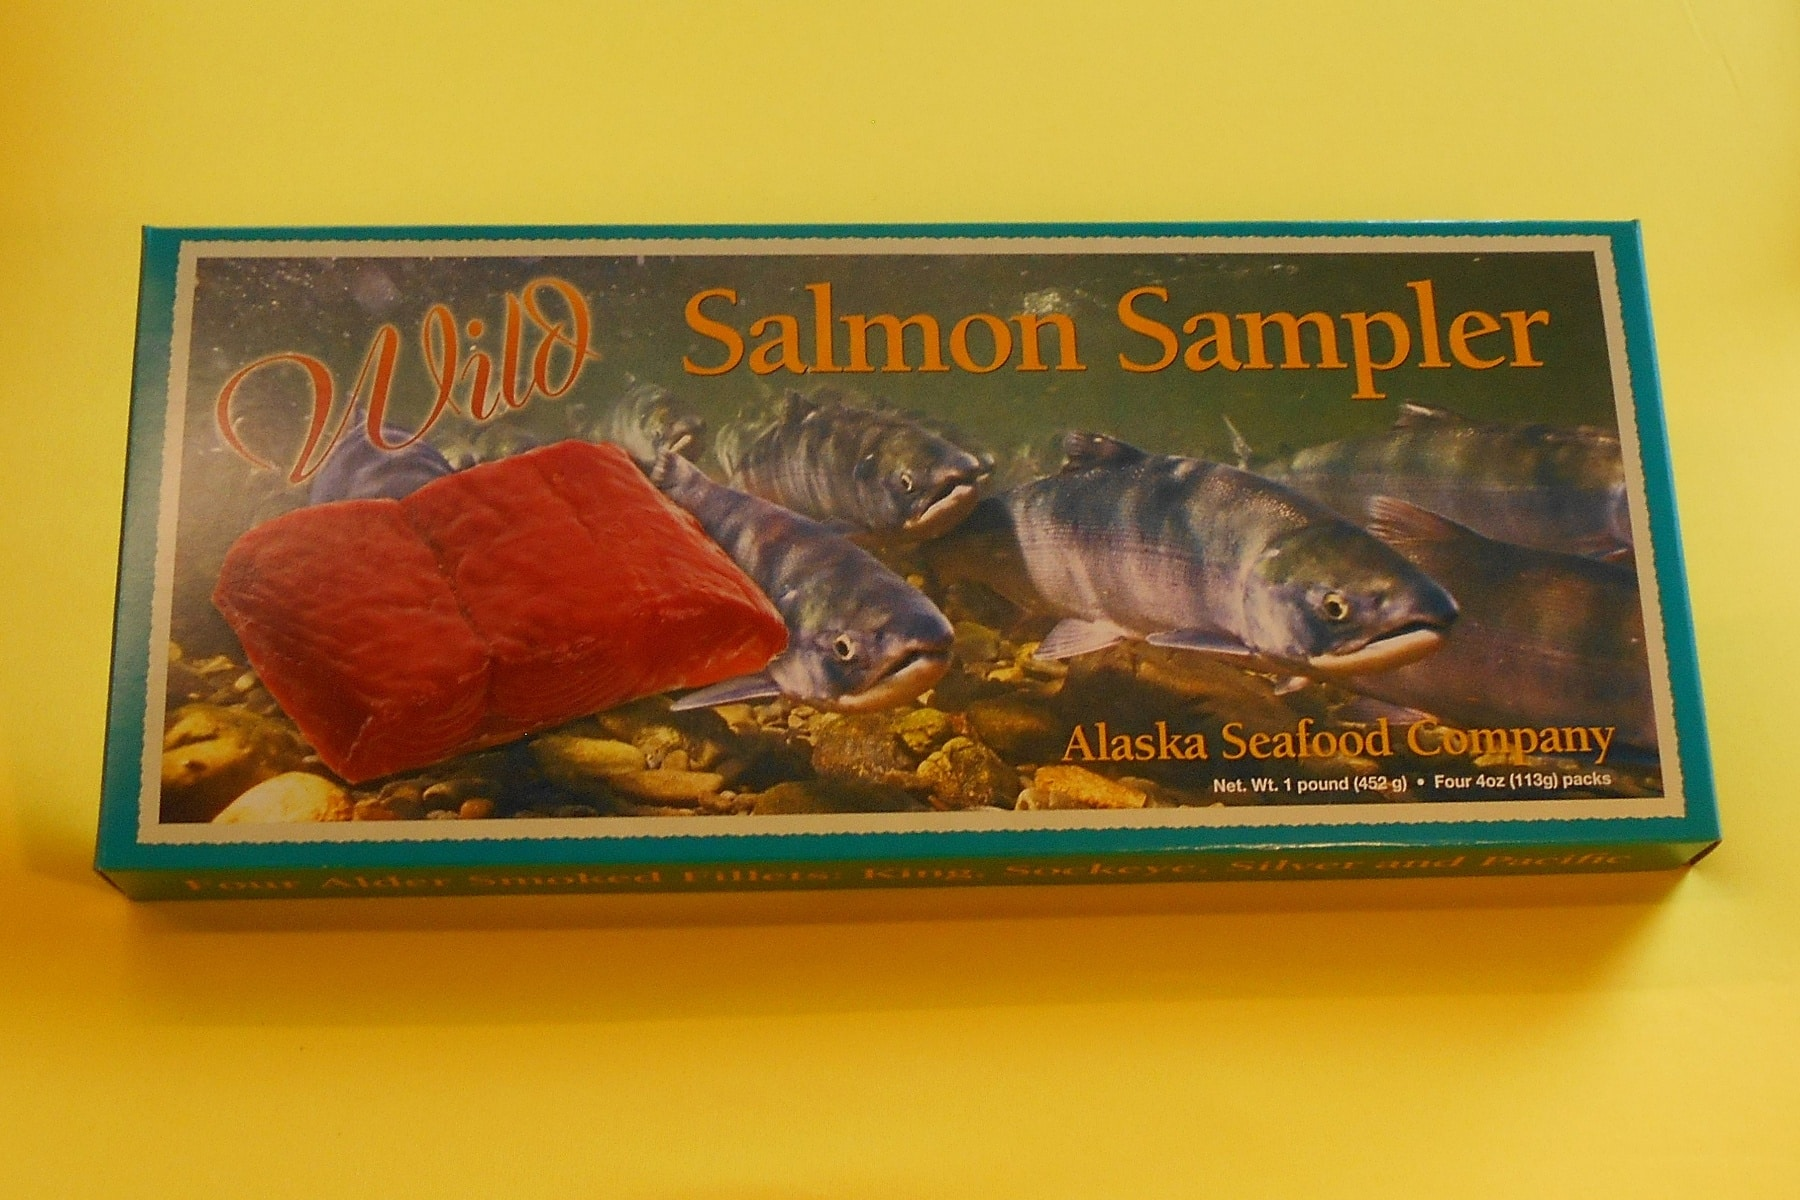 Salmon Sampler 4 oz of each species four 4 oz puches in gift box